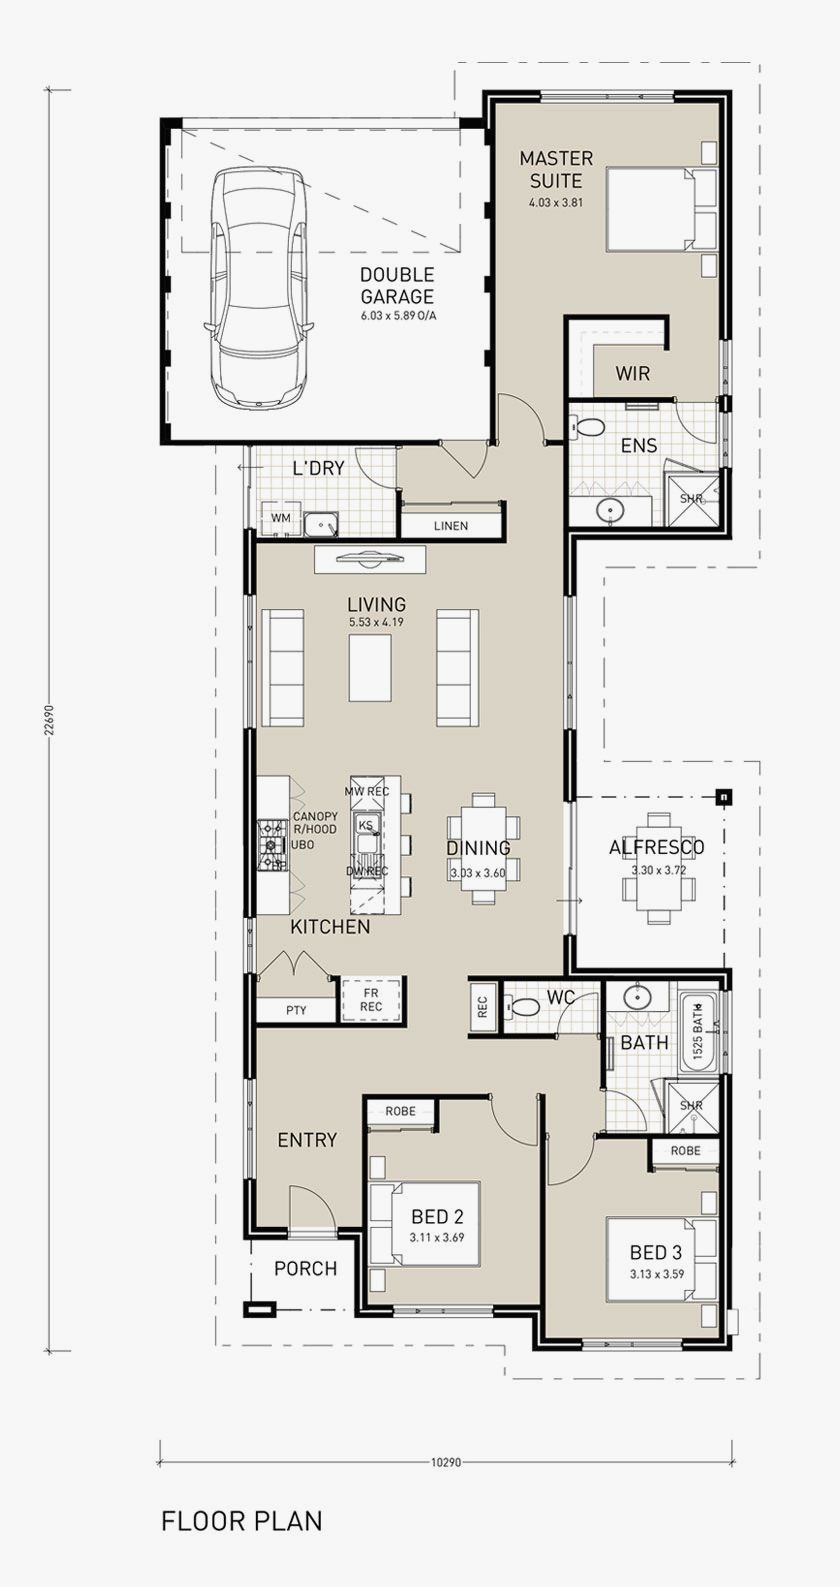 3 Bedroom Duplex Plans for Narrow Lots Elegant 3 Storey House Plans for Small Lots New Unique 2 Story